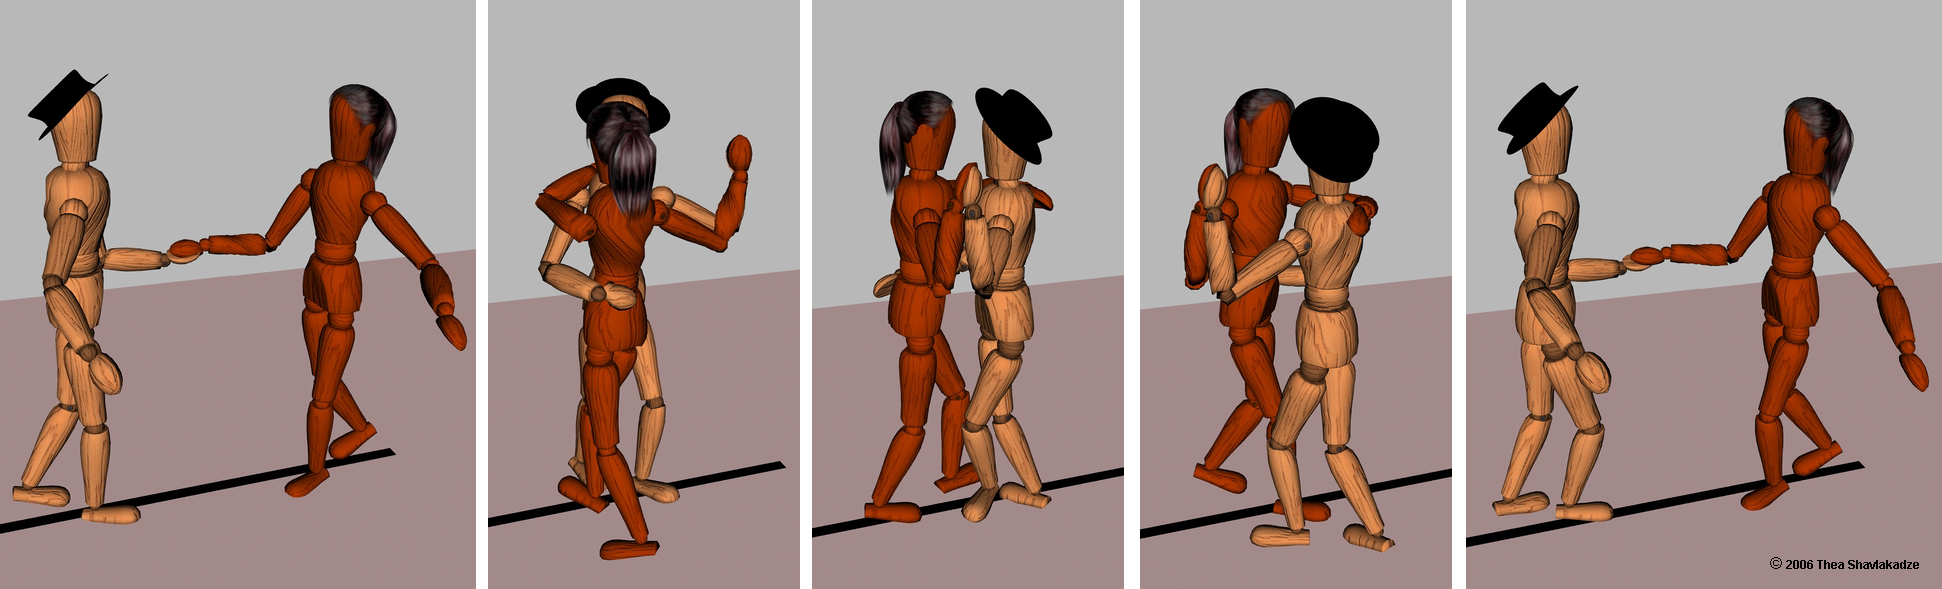 A Dictionary For Salsa And Mambo Moves Cool Dance Step By Diagram